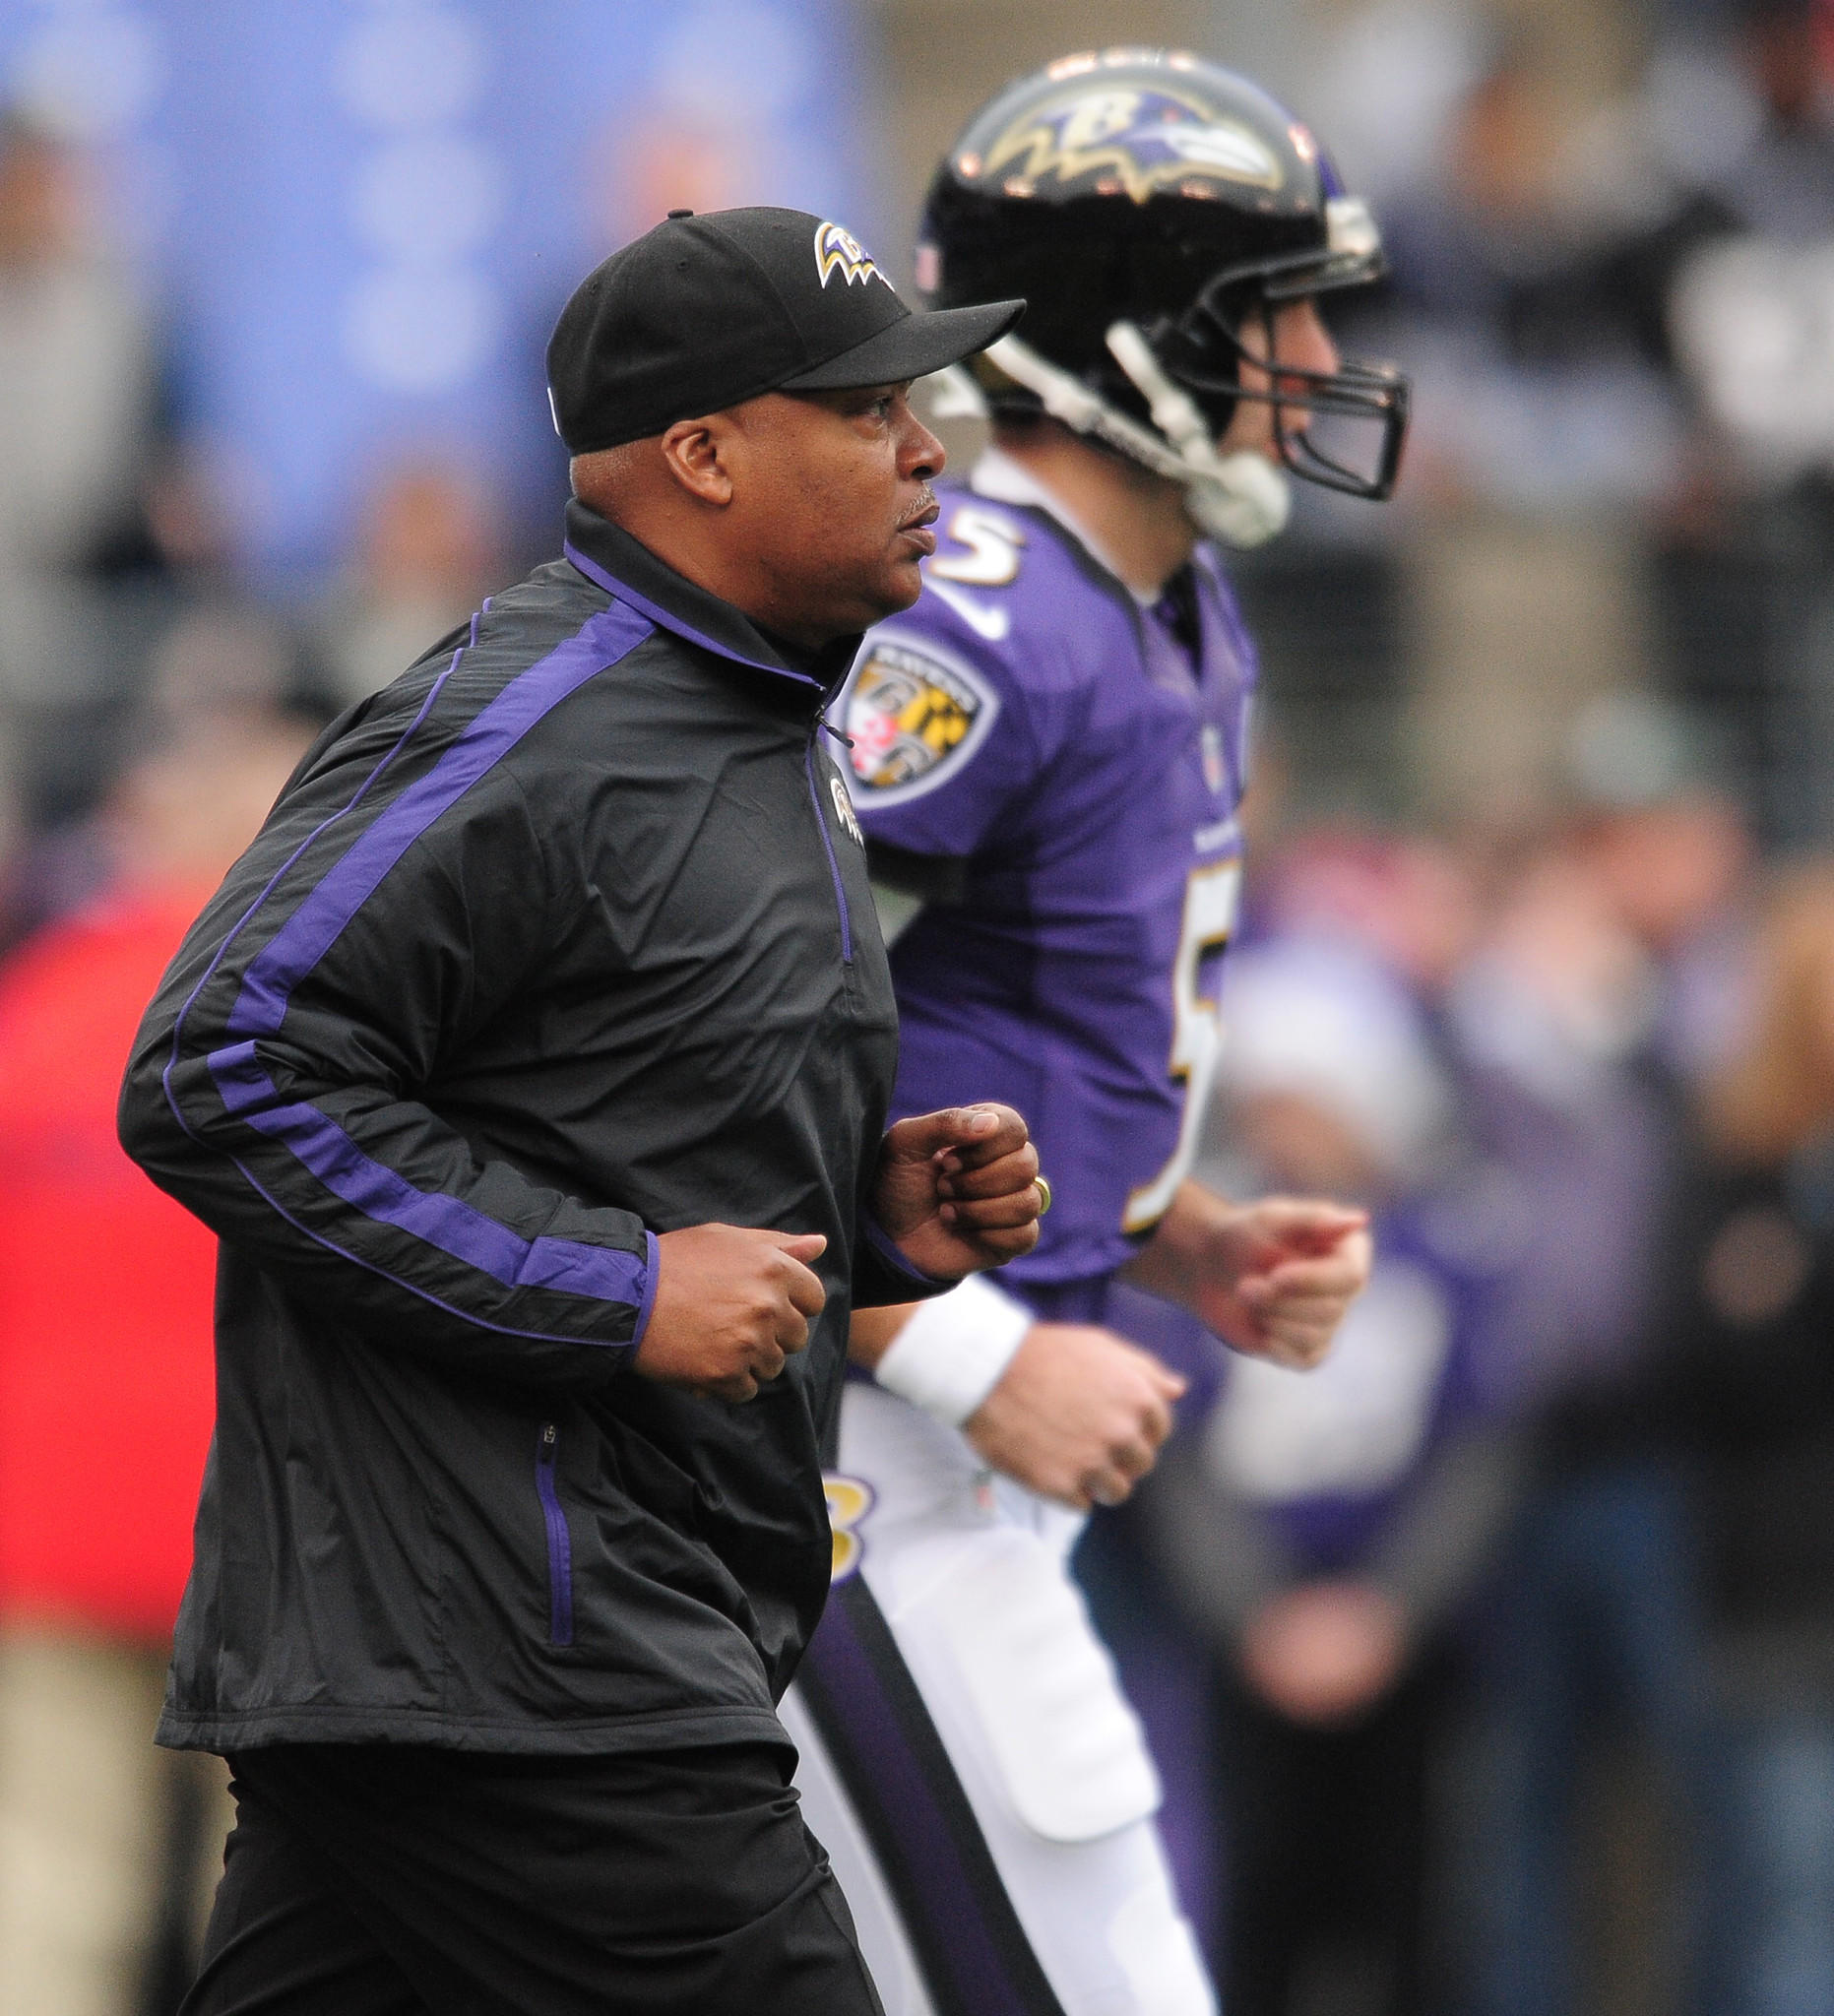 Ravens offensive coordinator Jim Caldwell jogs with Ravens quarterback Joe Flacco in 2012.